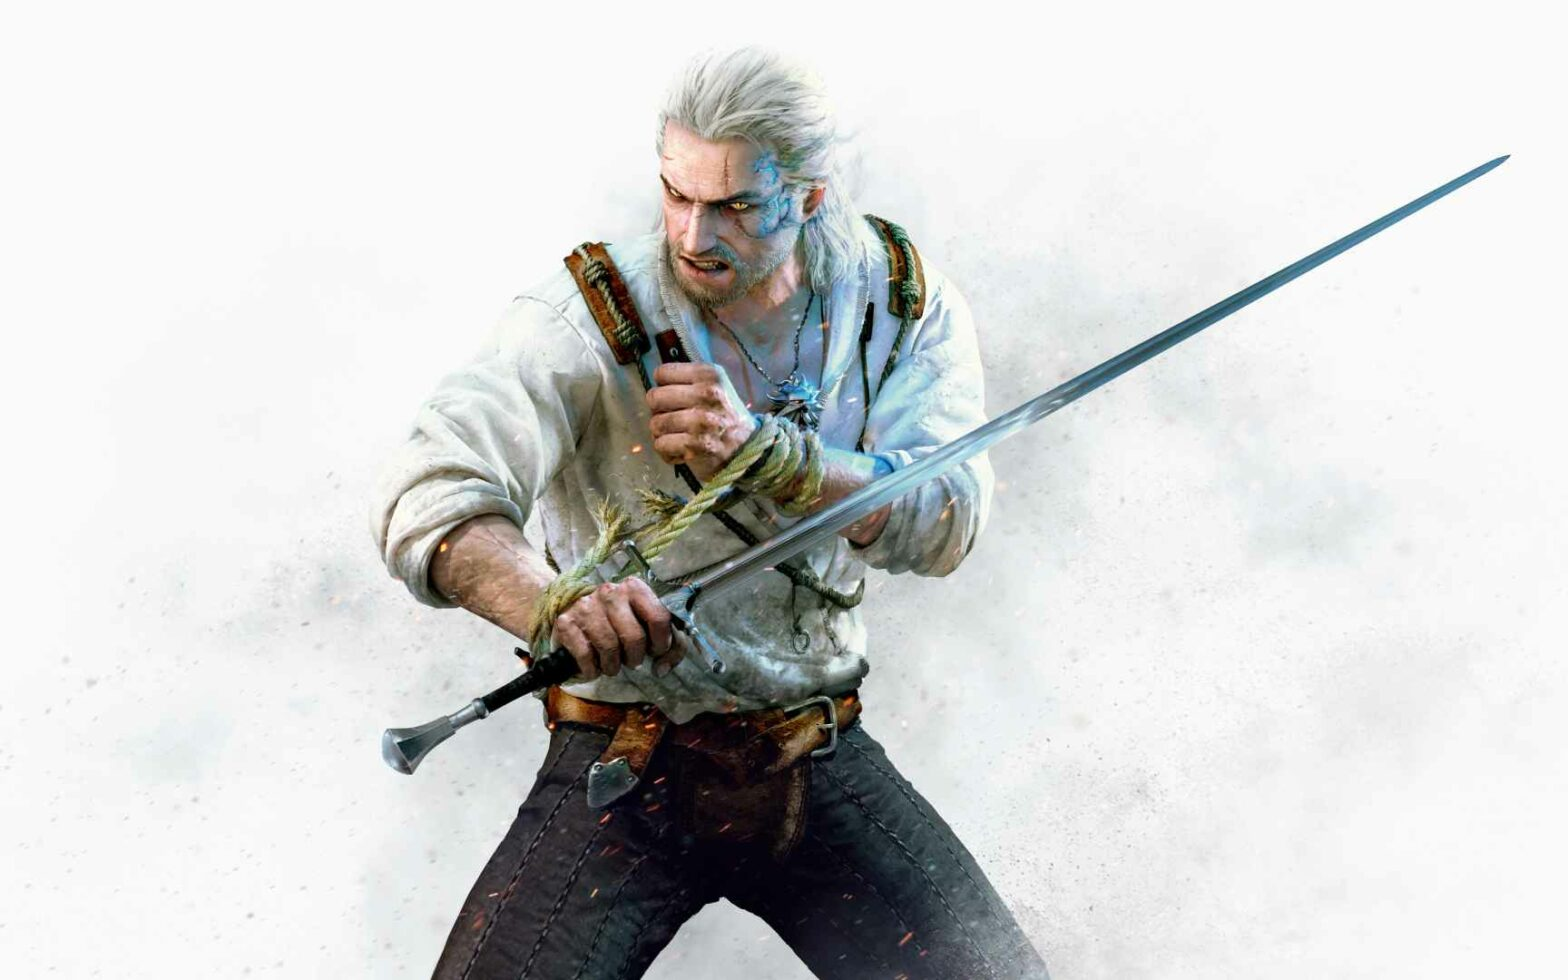 The Witcher 3: Hearts of Stone